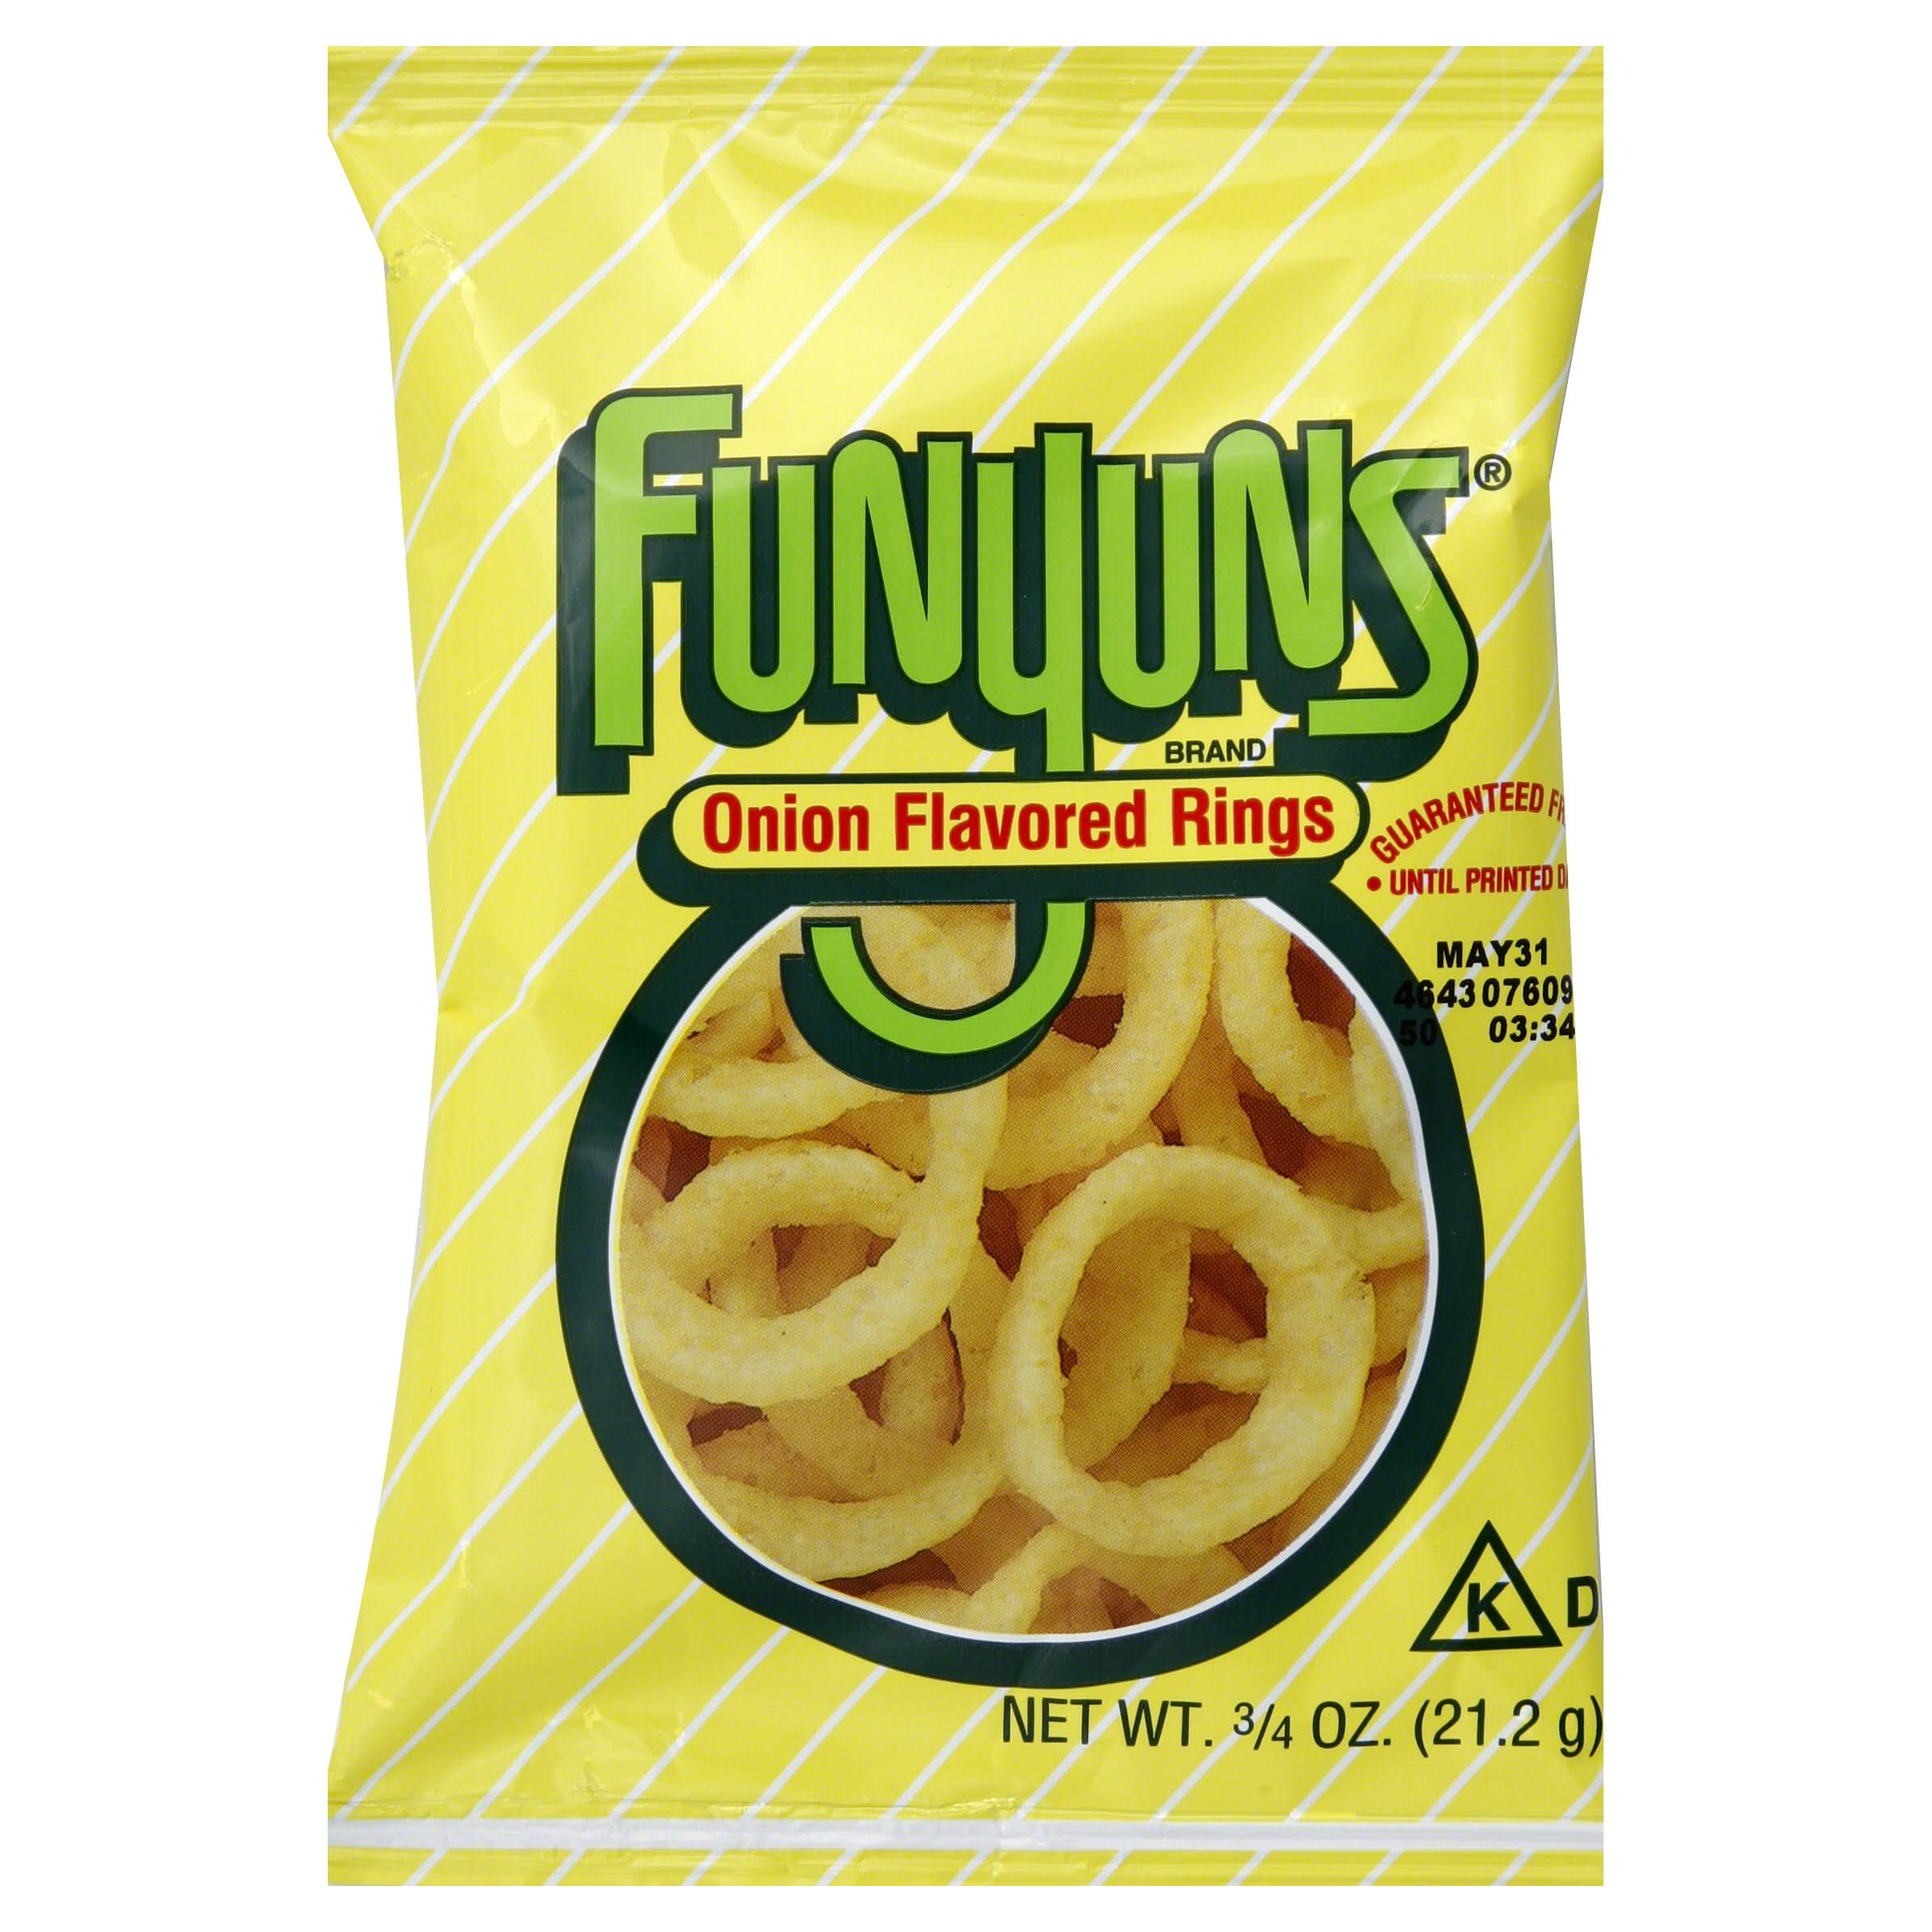 Funyuns Onion Flavored Rings - 21g